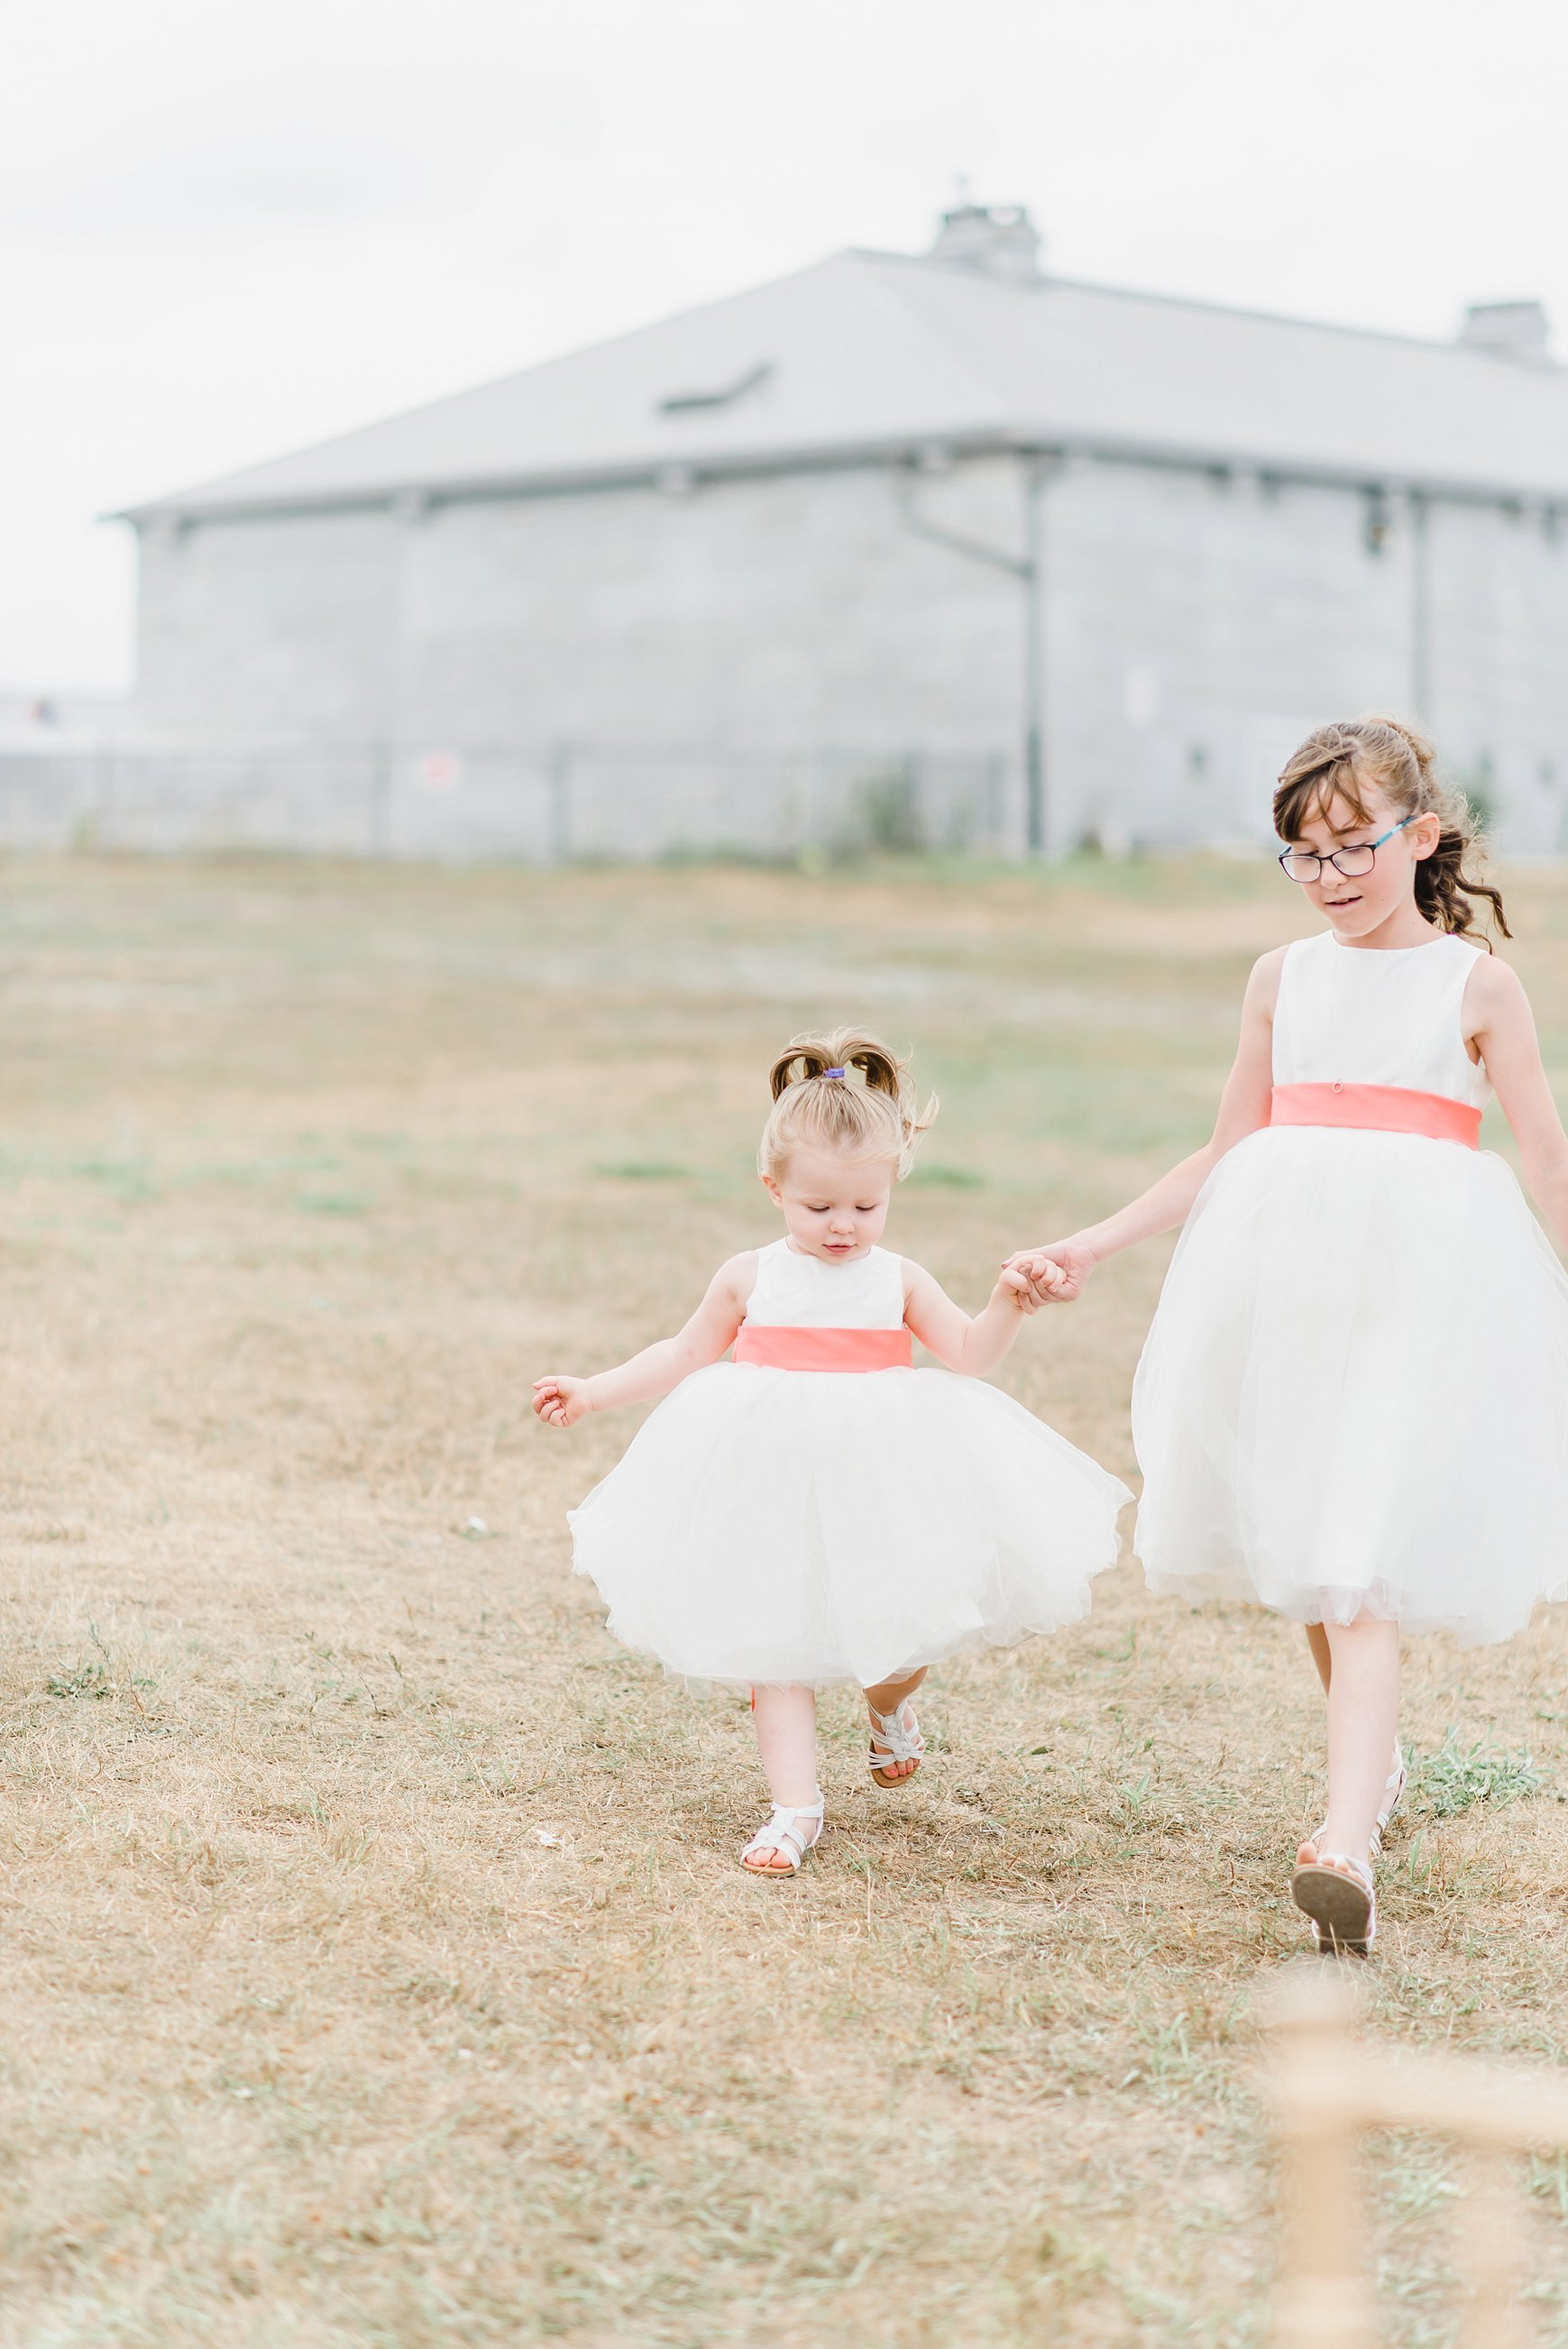 Here's Emma and Tim's adorable daughter frolicking towards them during the ceremony as one of their flower girls, with her cousin's hand in hers.